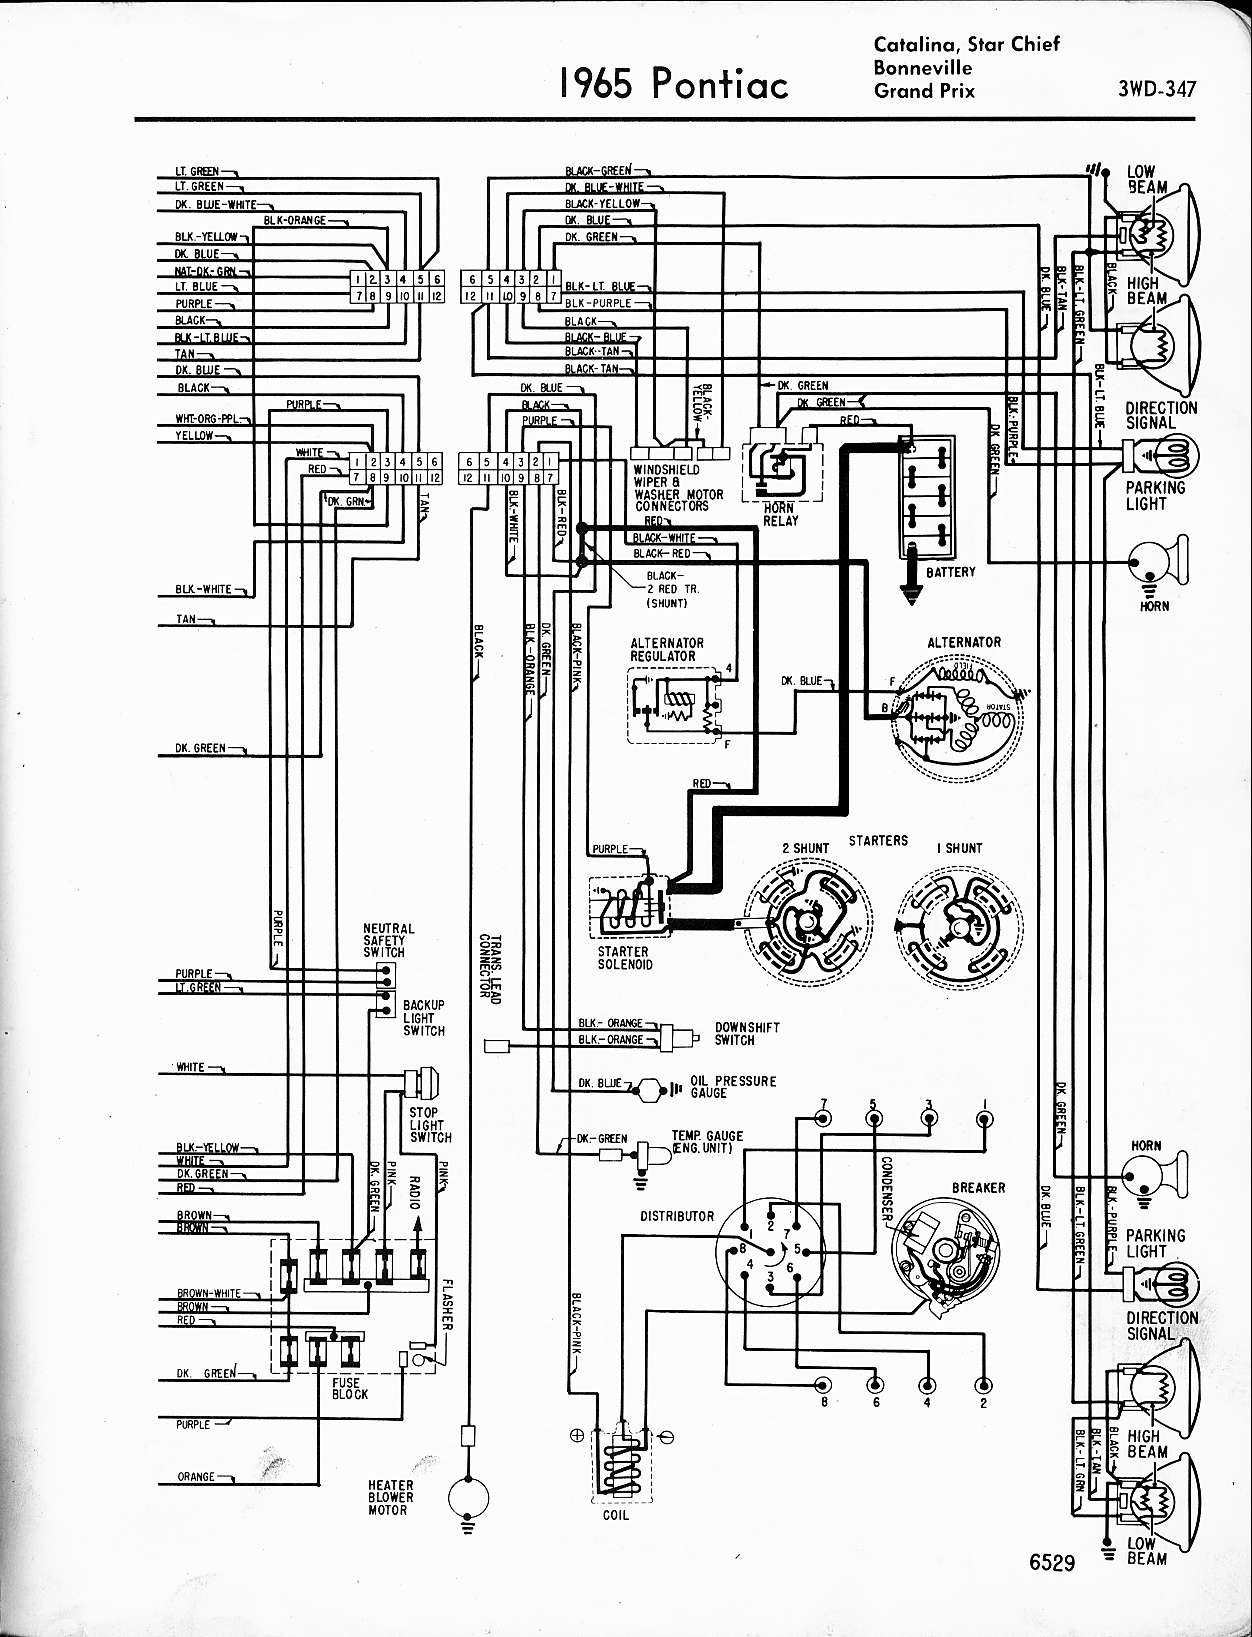 pontiac lemans wiring diagram wiring diagram u2022 rh tinyforge co 1966 pontiac catalina wiring diagram 1965 Pontiac Tach Wiring Diagram